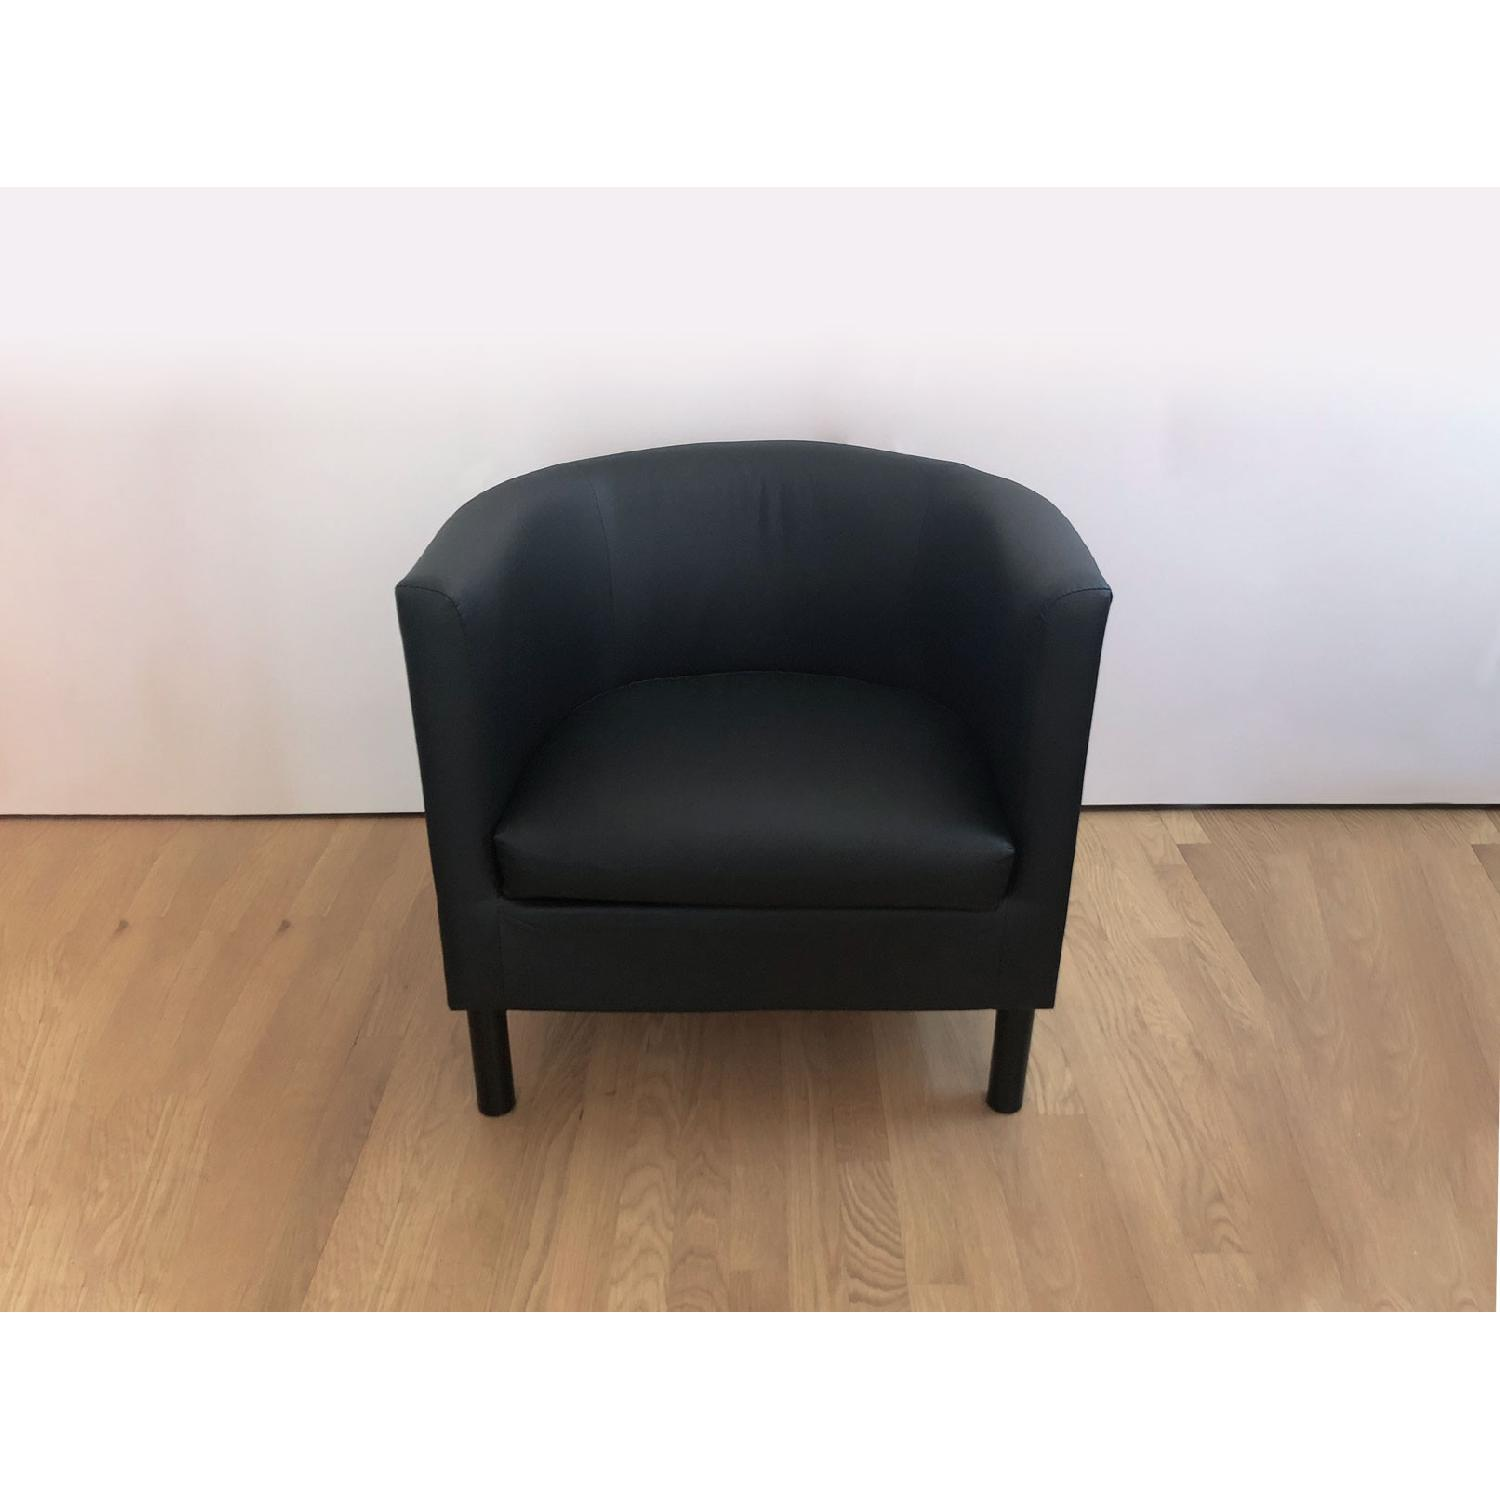 Ikea Black Faux Leather Armchairs - image-1